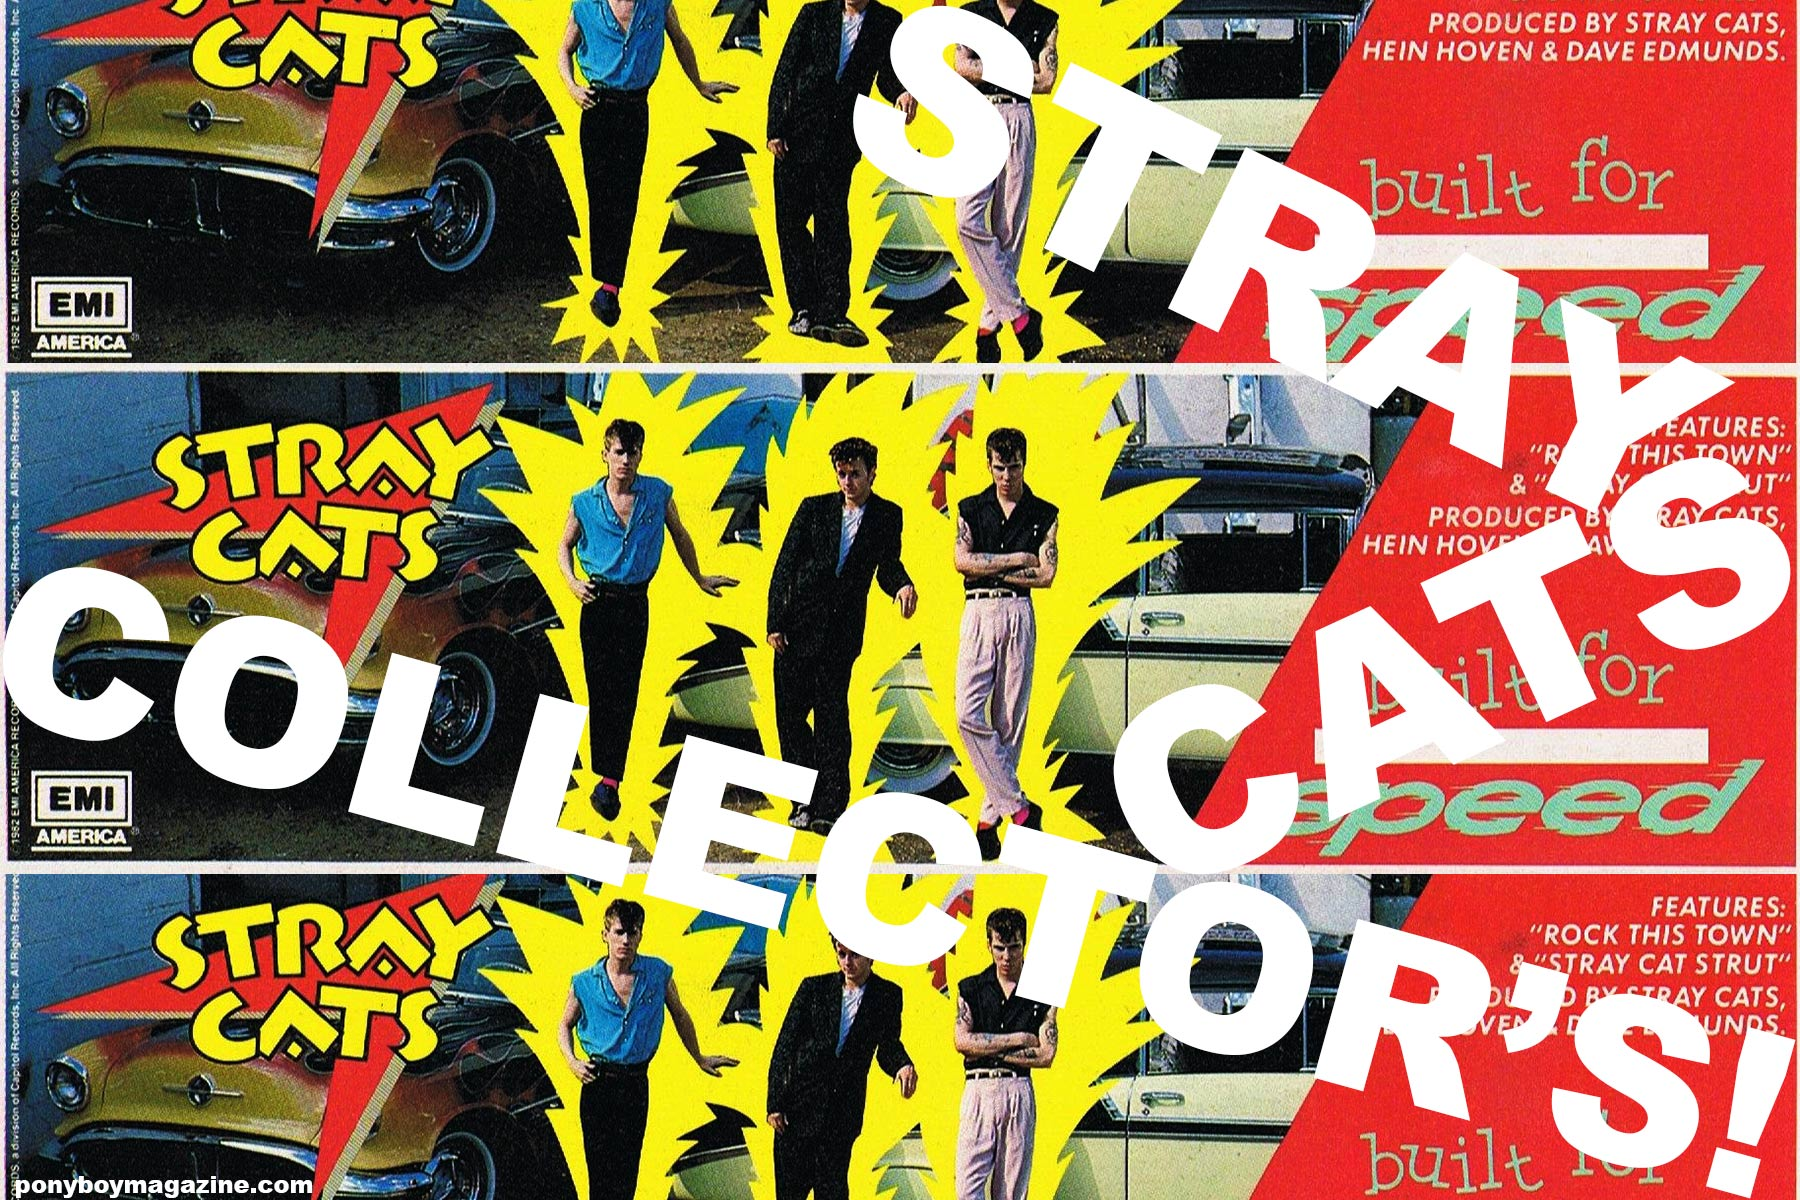 Stray Cat's Collector's. Ponyboy magazine.